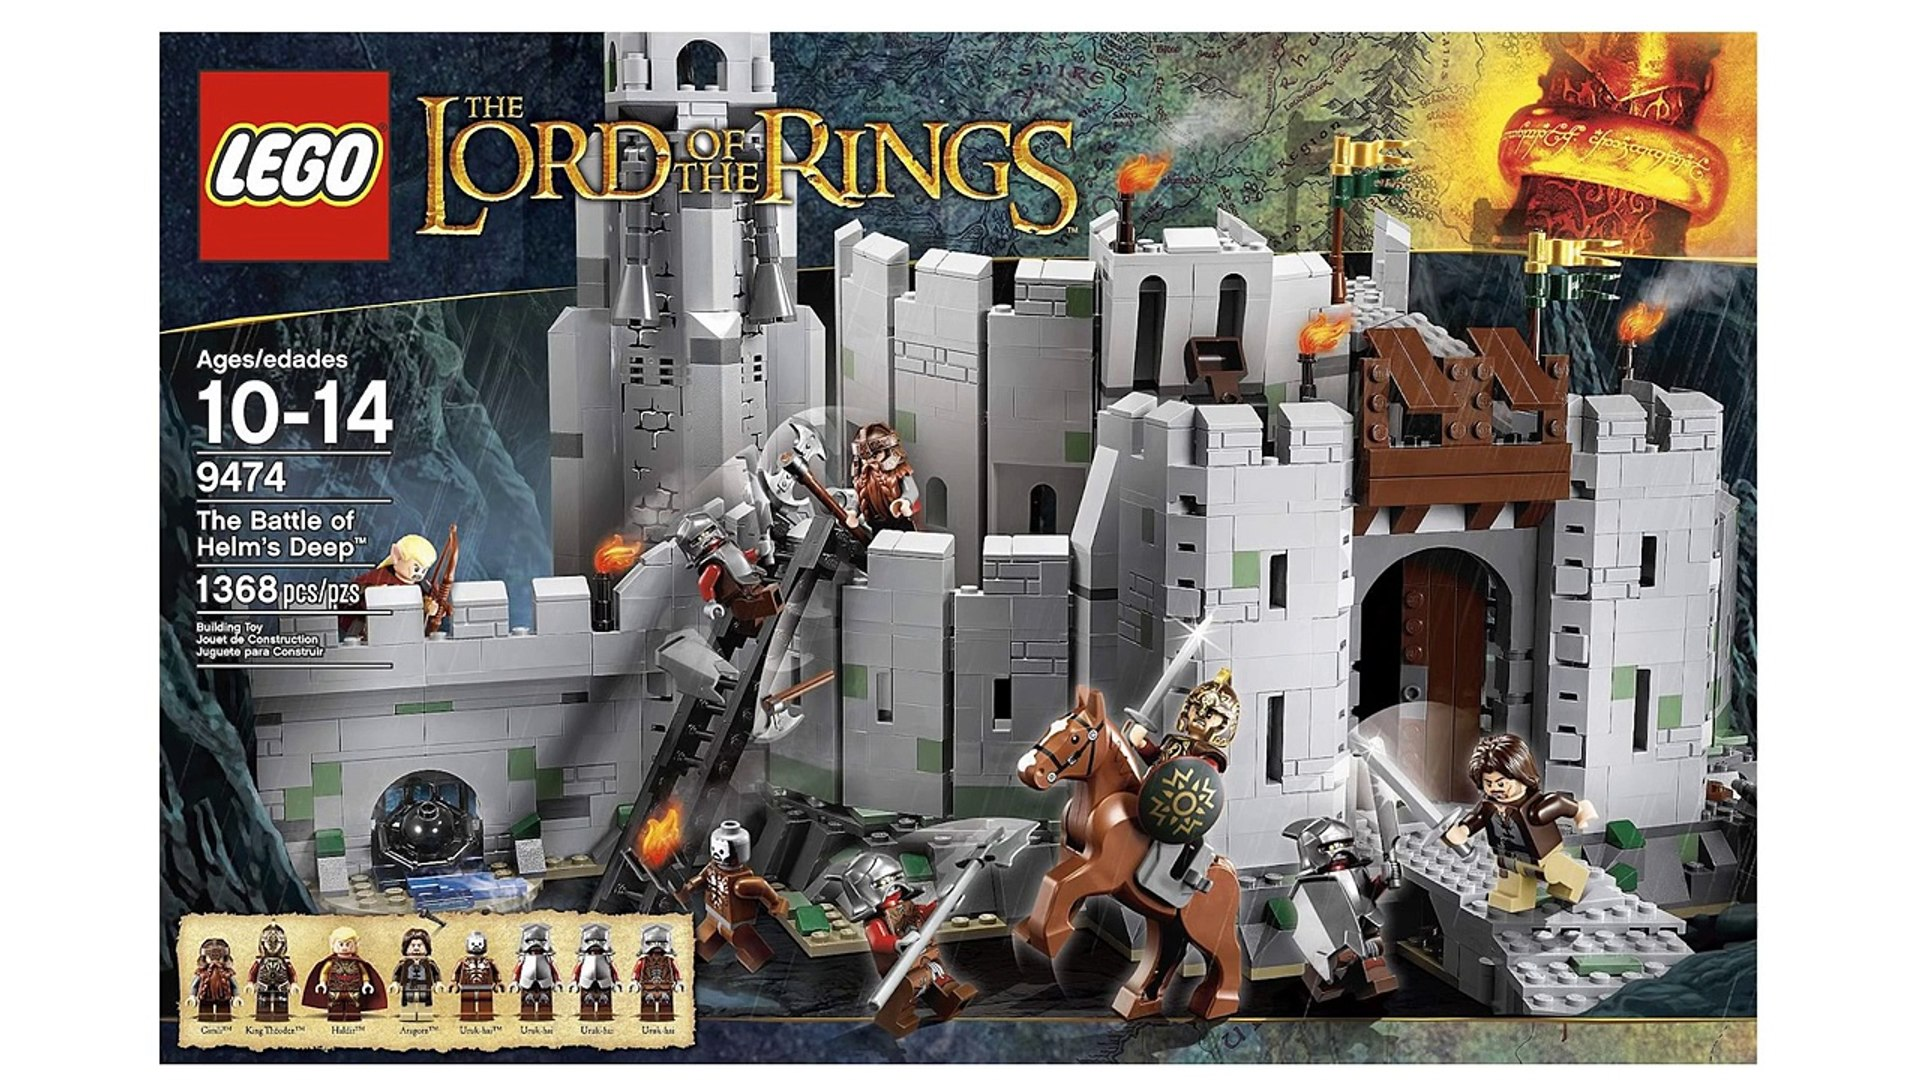 Lego The Lord of the Rings 9474 The Battle of Helms Deep - Lego Speed build